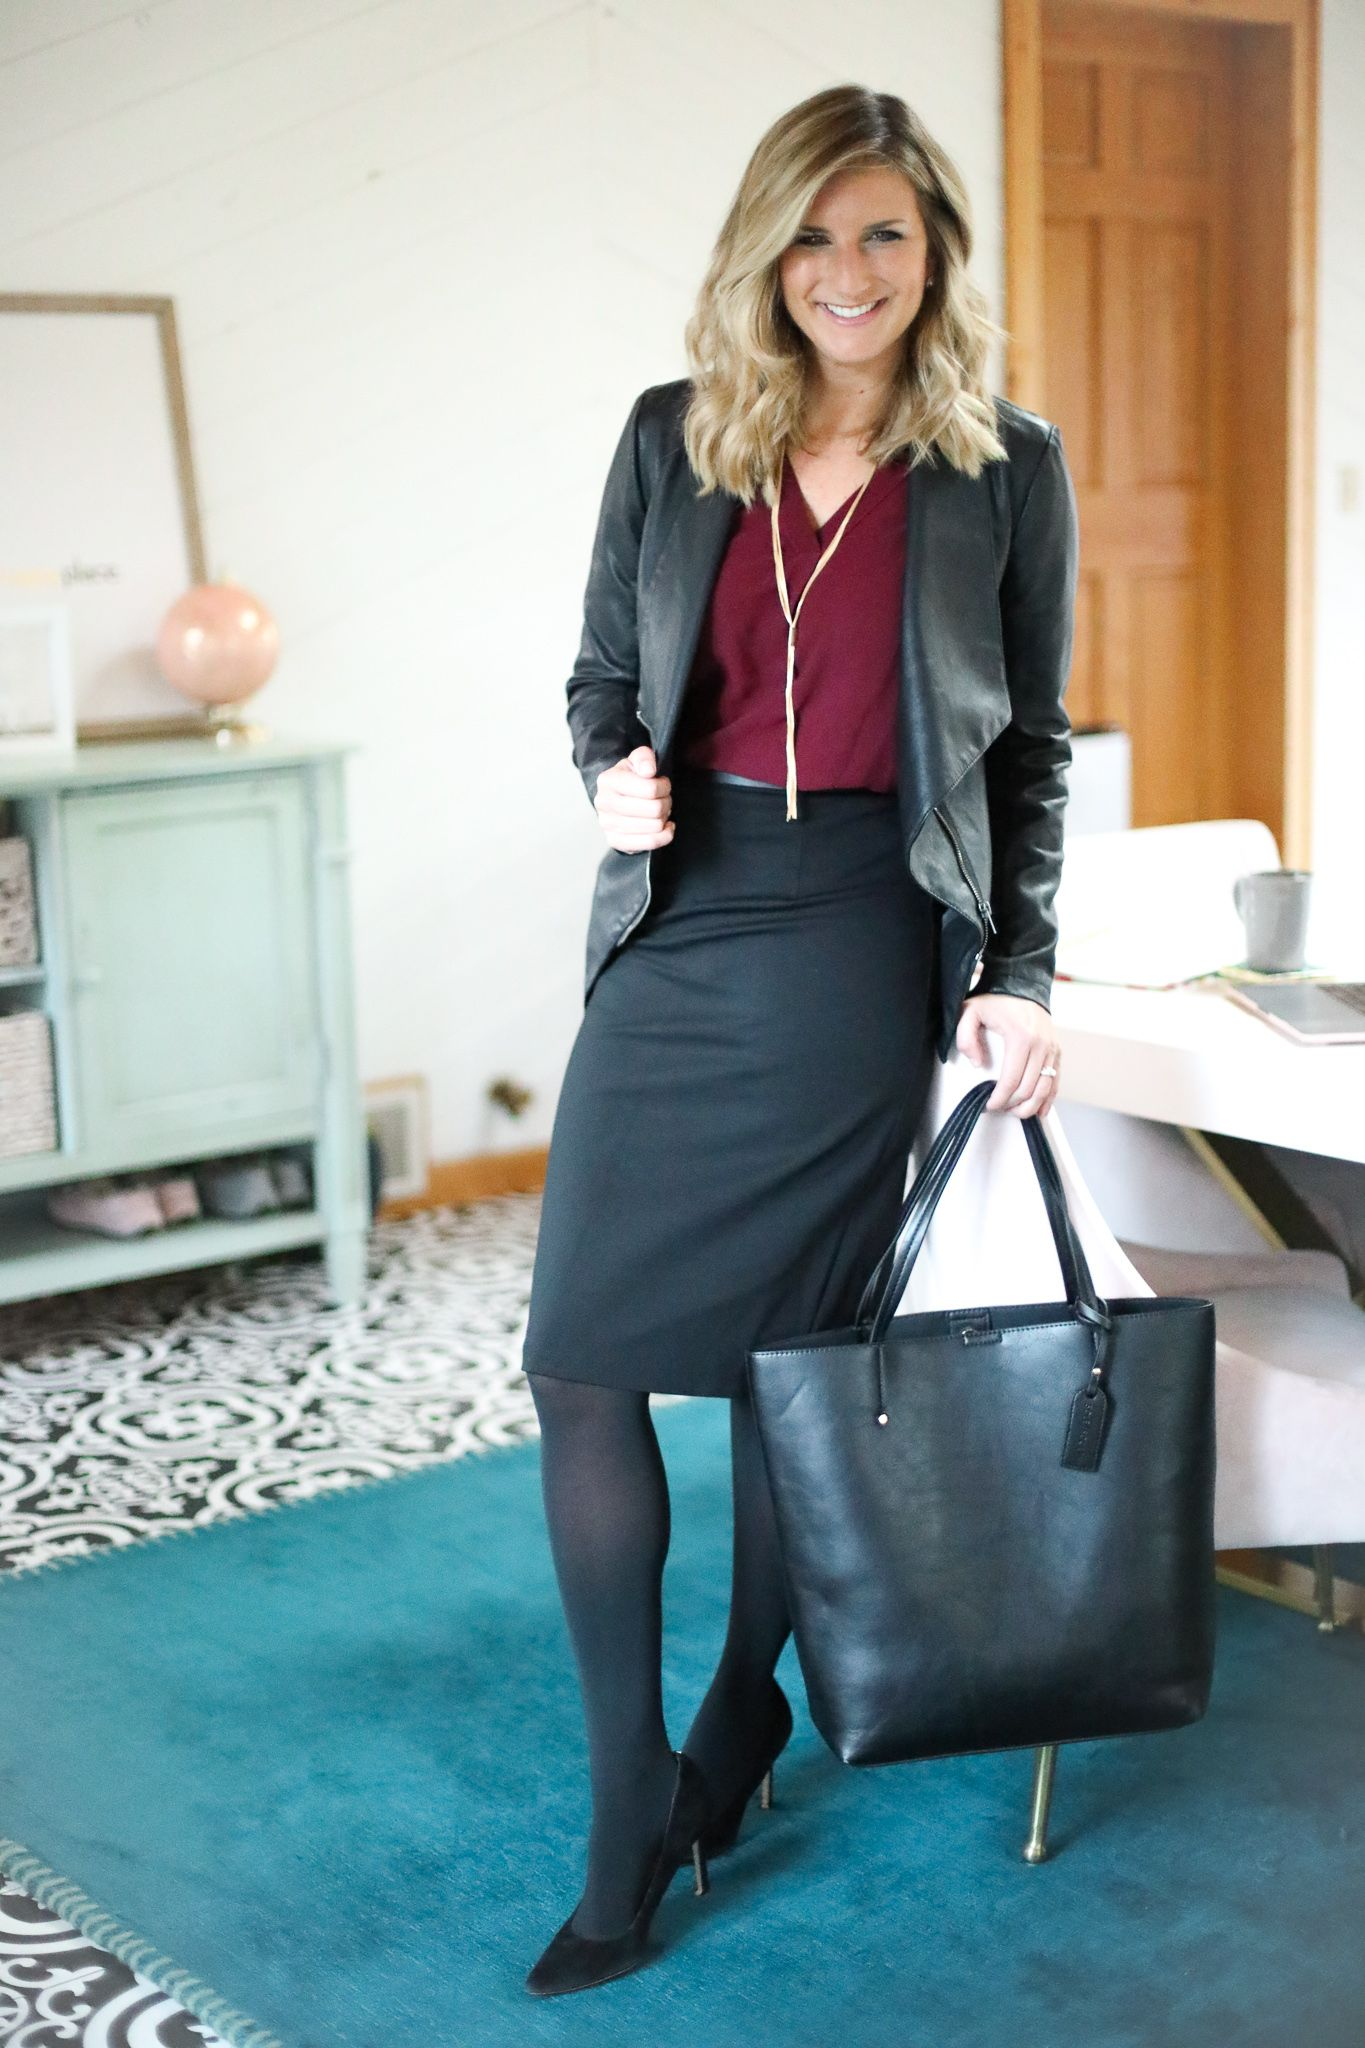 598f12a7bfe How to rock a faux leather jacket 3 ways! It's my favorite layering piece  for fall and winter and instantly makes any outfit look just that much  cooler!